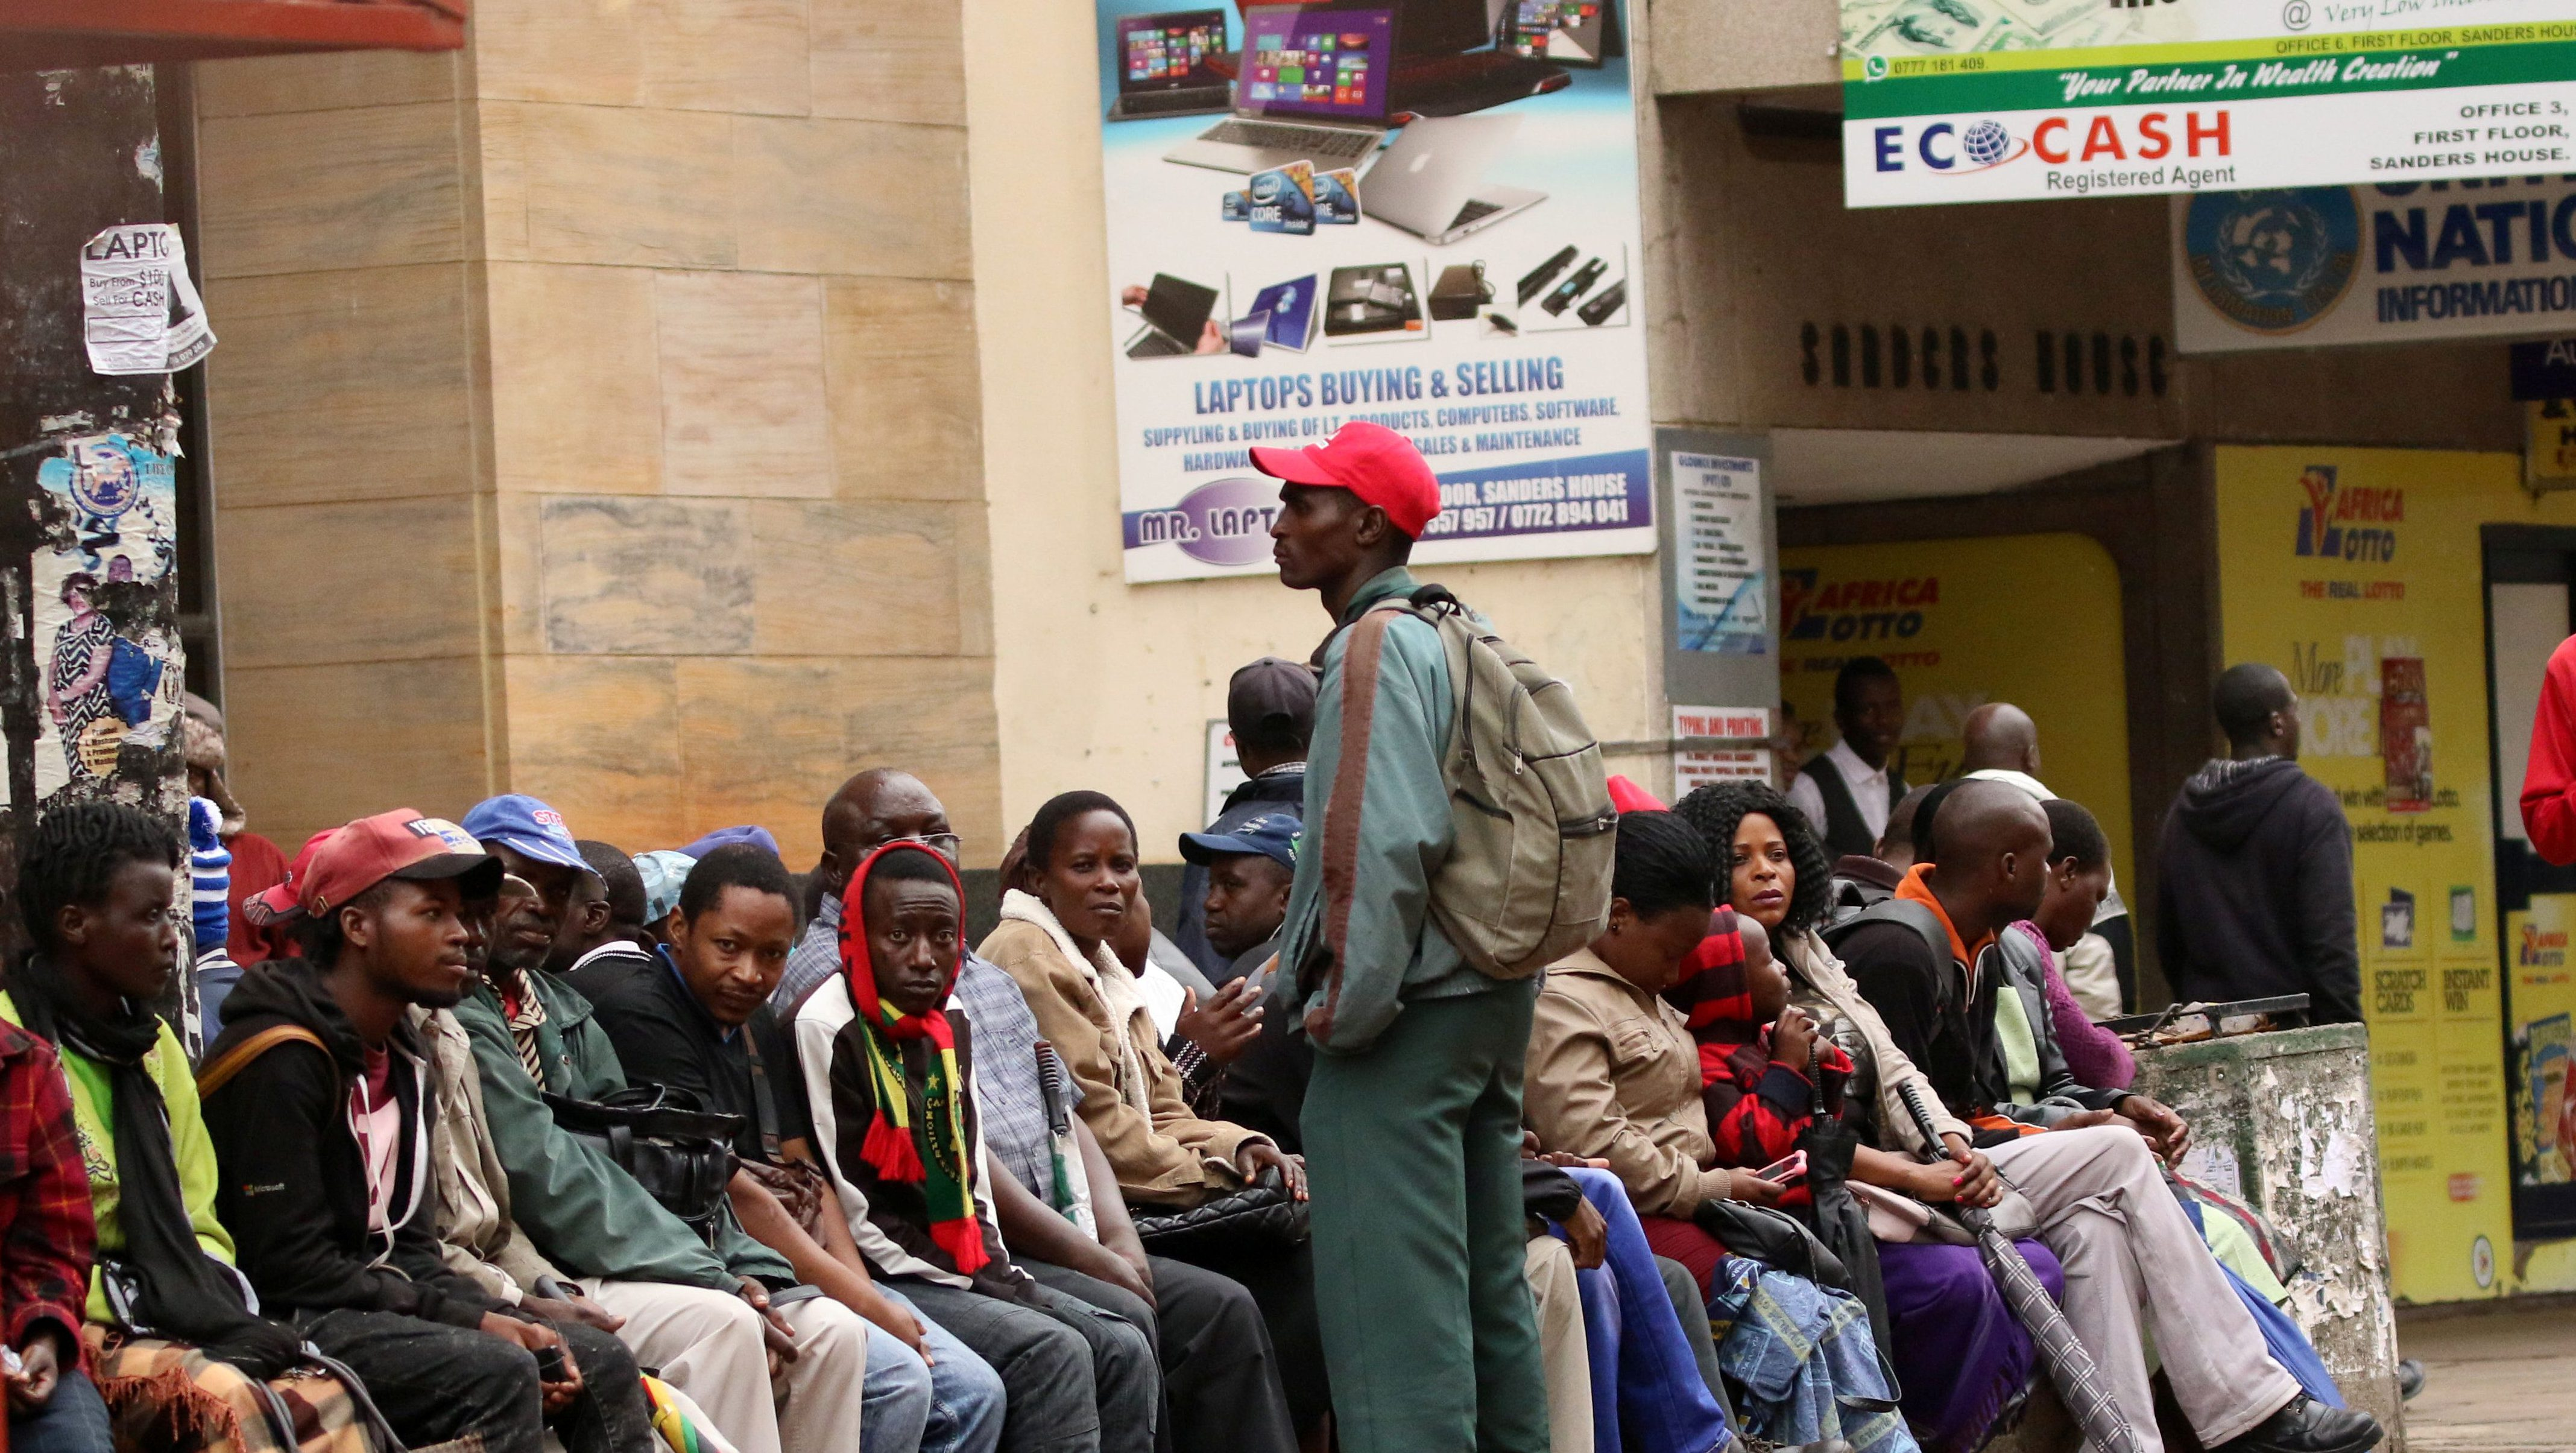 People queue to draw money outside a bank in Harare, Zimbabwe, November 15,2017. REUTERS/Philimon Bulawayo - RC1E11B3A120